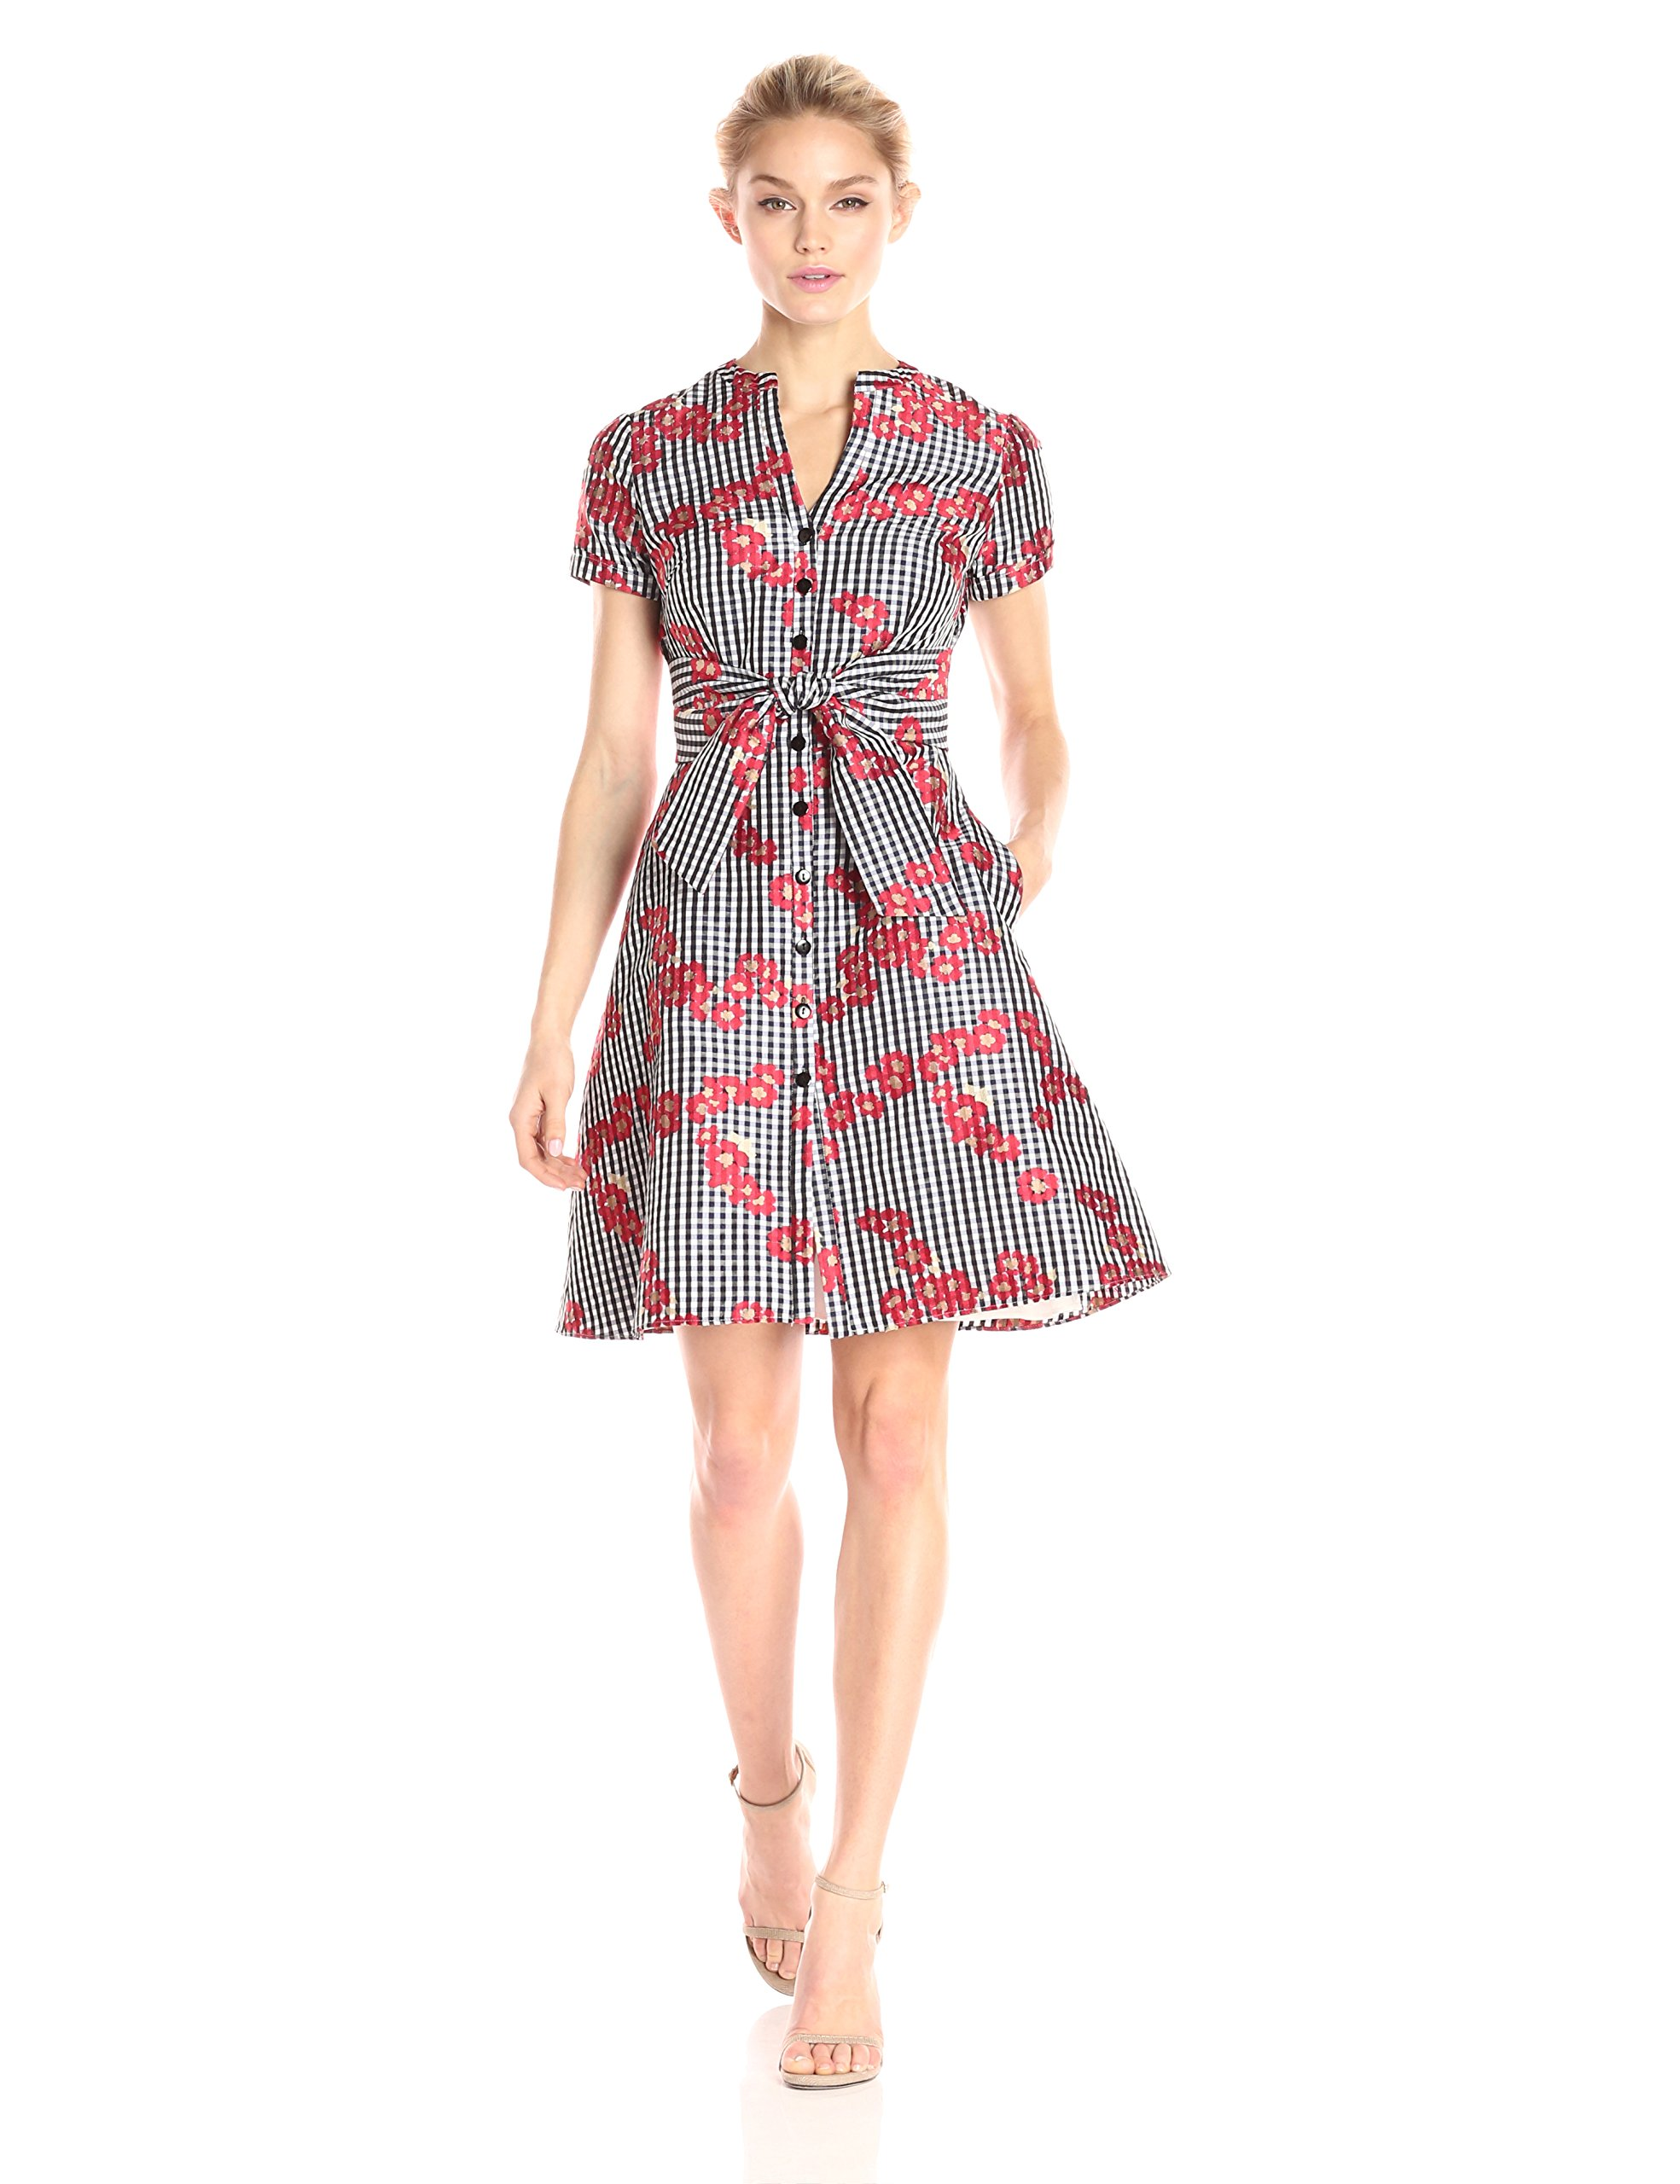 Adrianna Papell Women's Gingham and Floral Flared Embroidered Shirt Dress, Red, 14 by Adrianna Papell